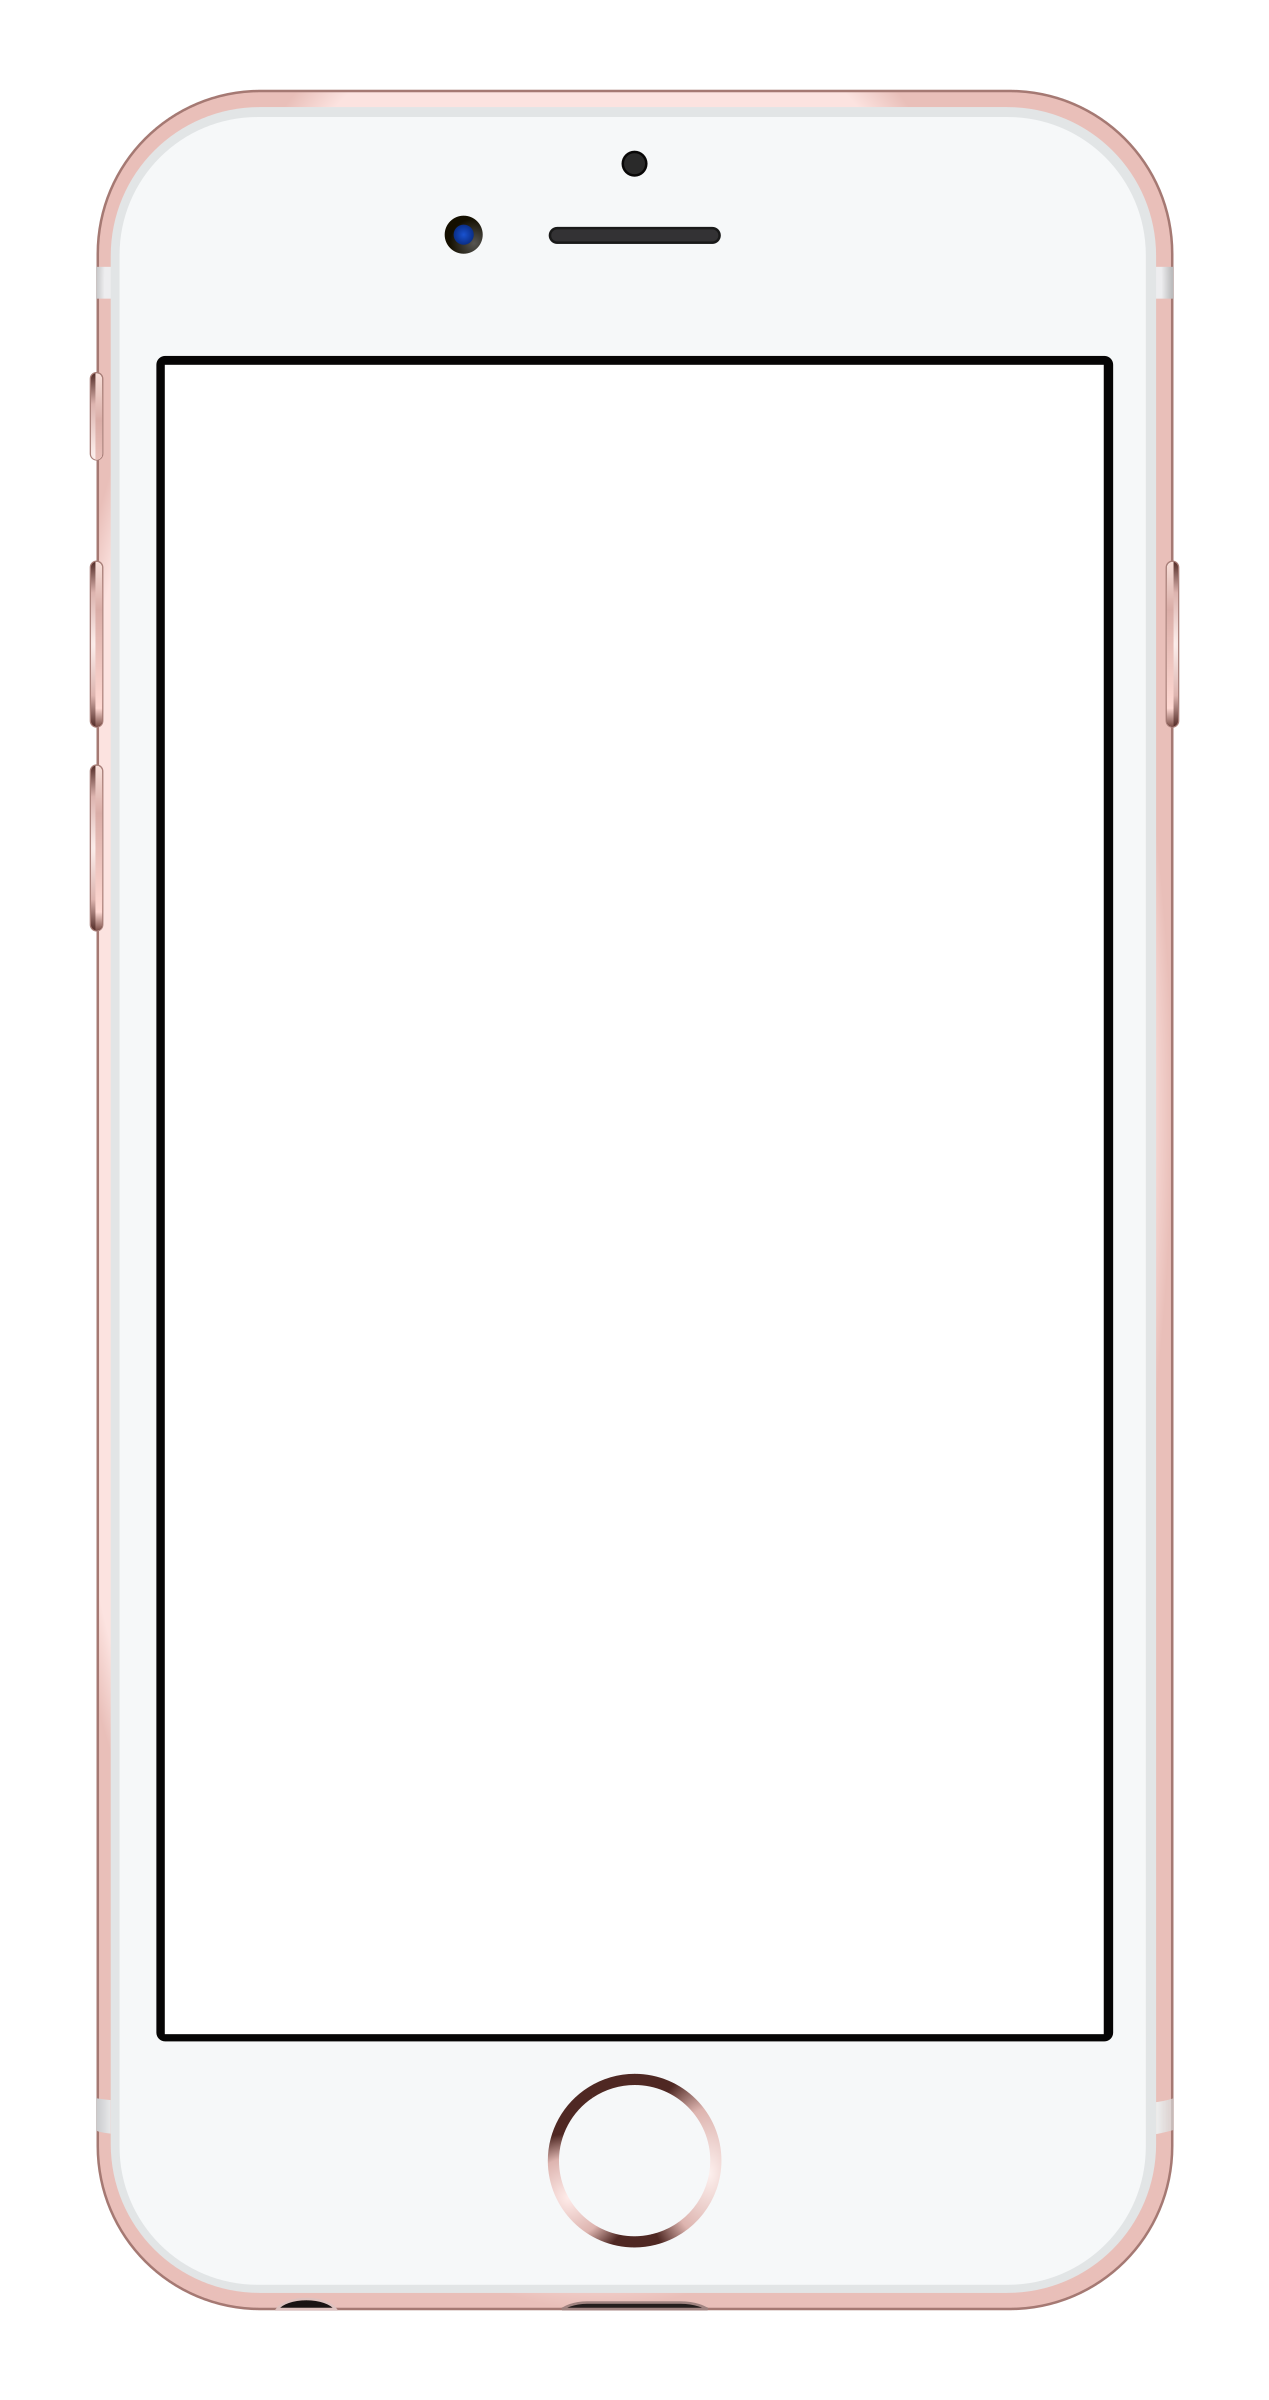 Blank iphone png. S rose gold icons